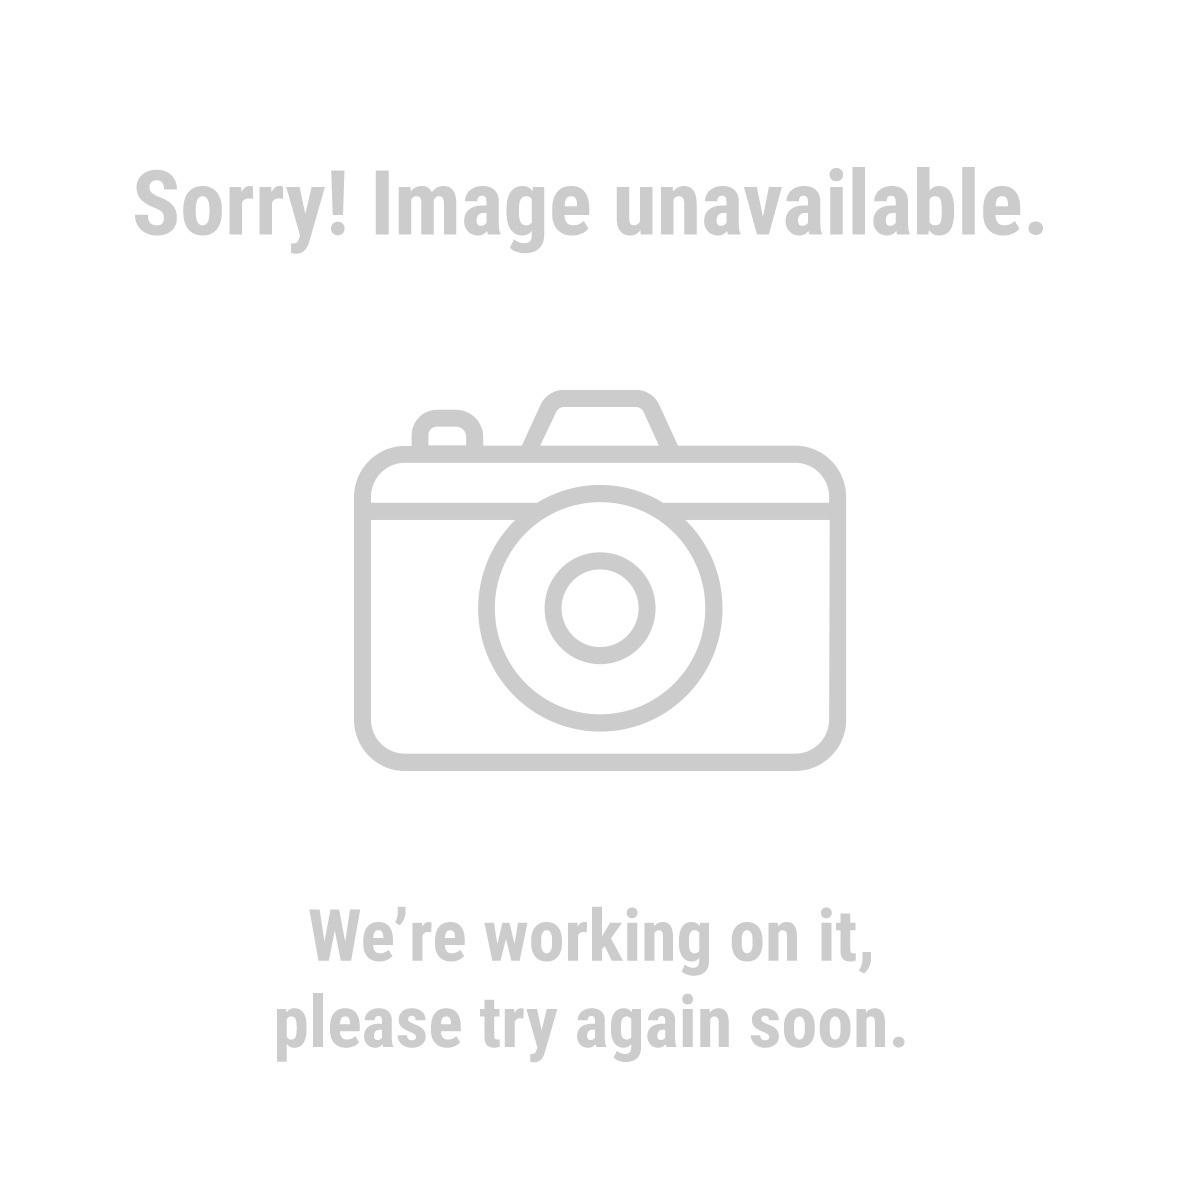 Chicago Electric Welding Systems 98958 Oxygen and Acetylene Welding Kit